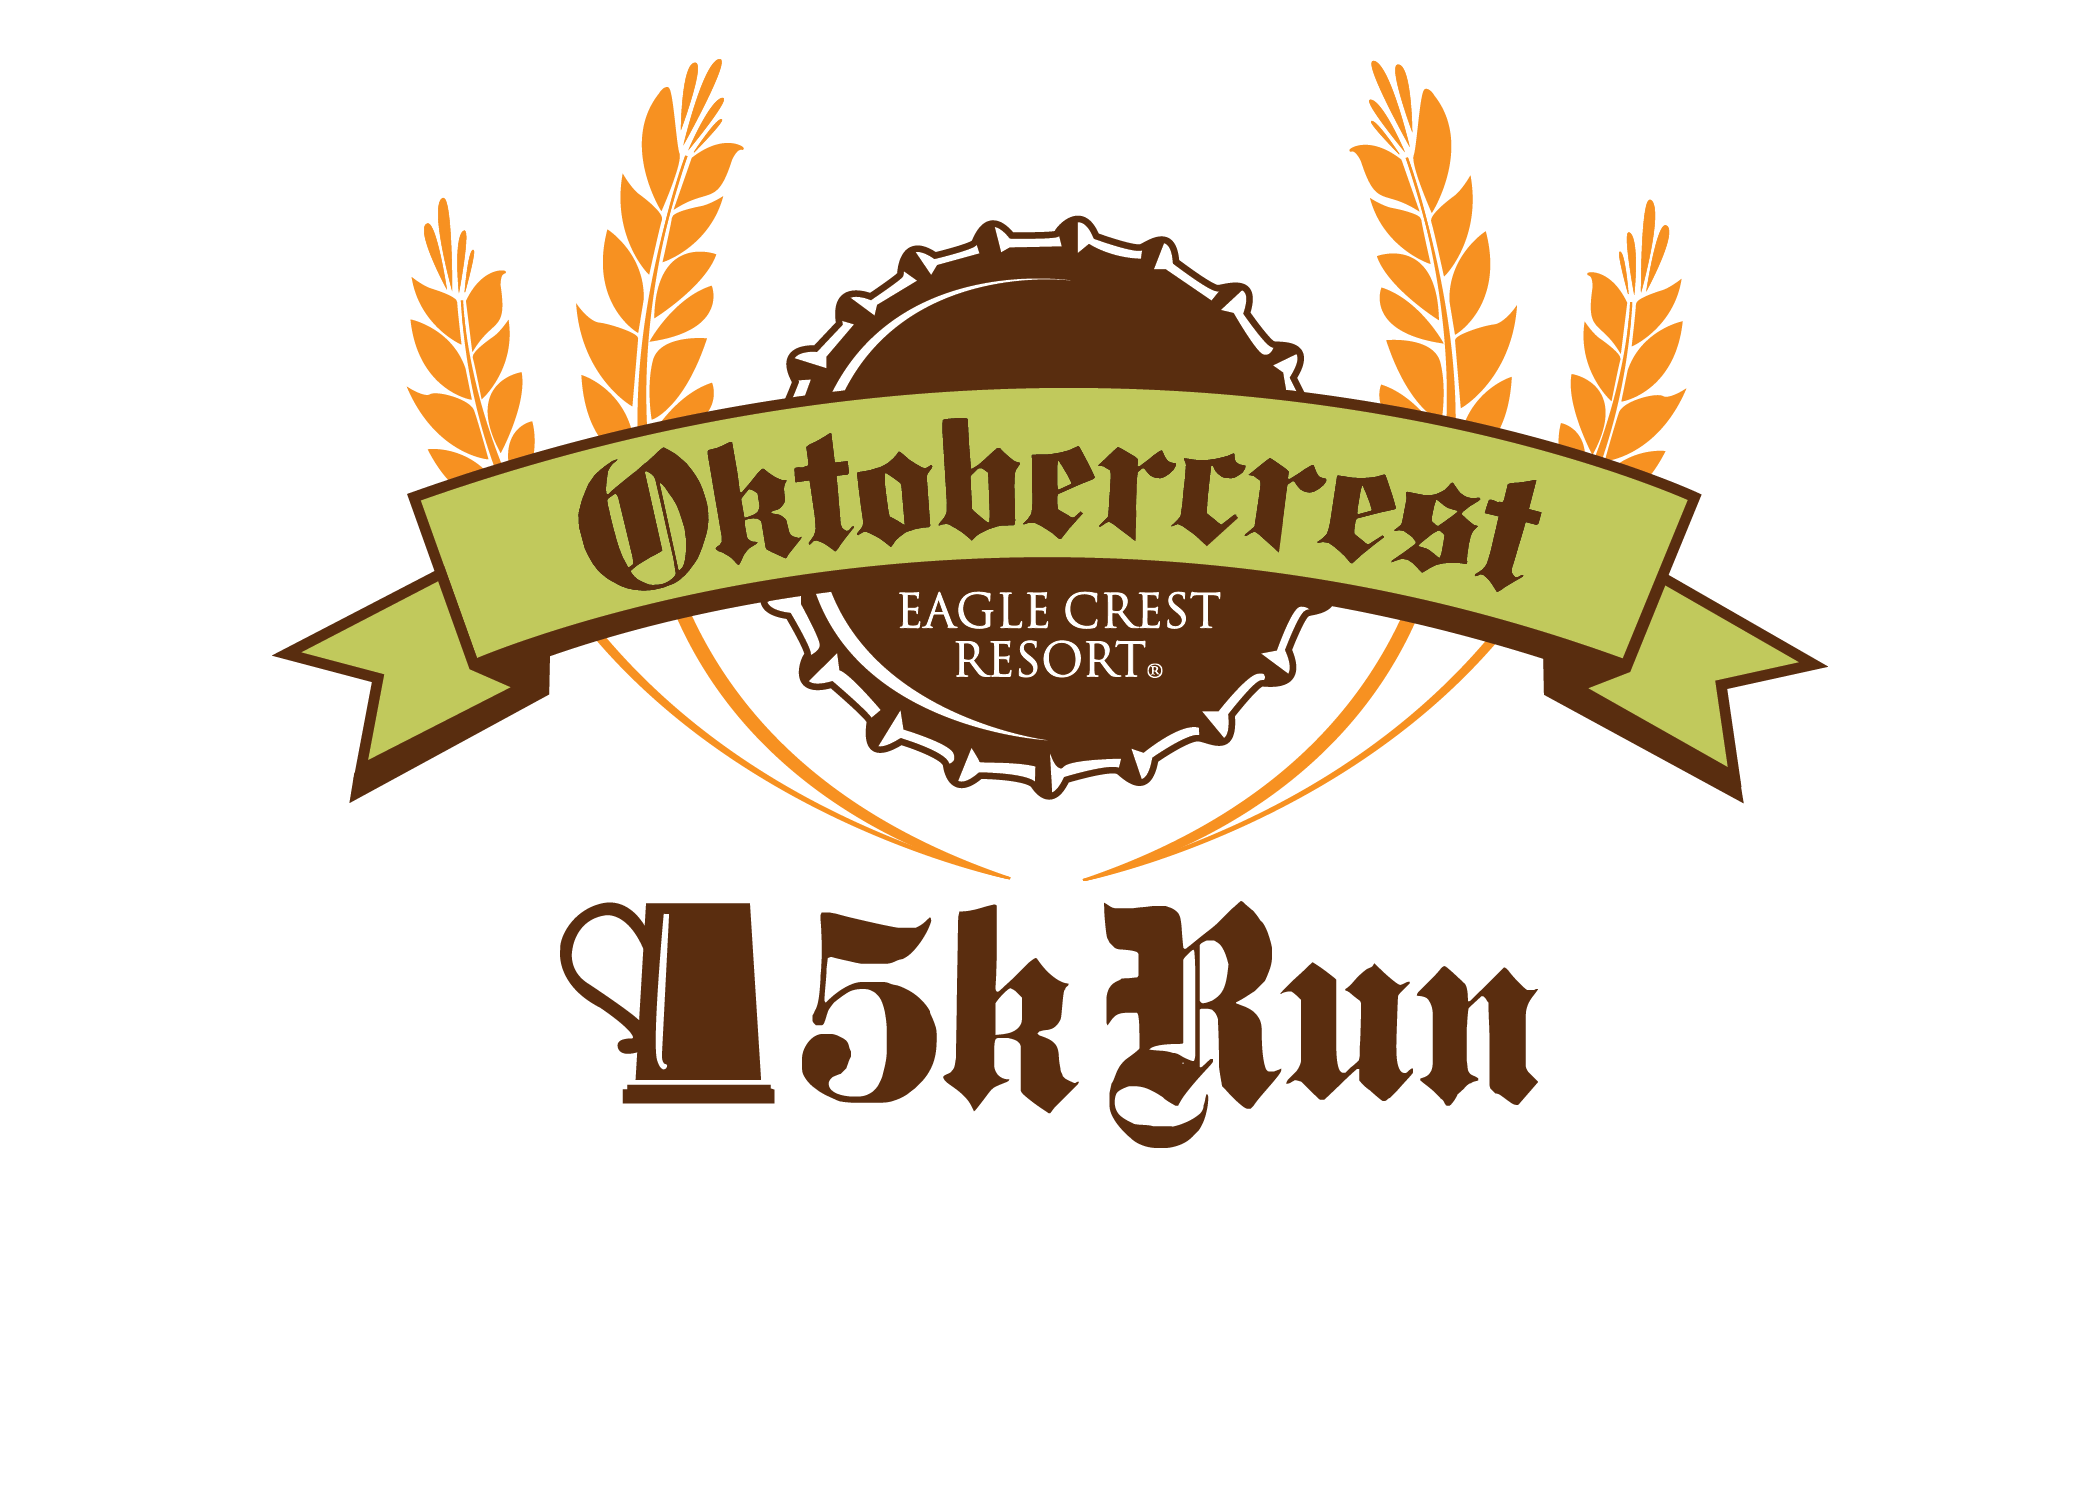 2014 Oktoberfests in Downtown Bend and Eagle Crest Resort